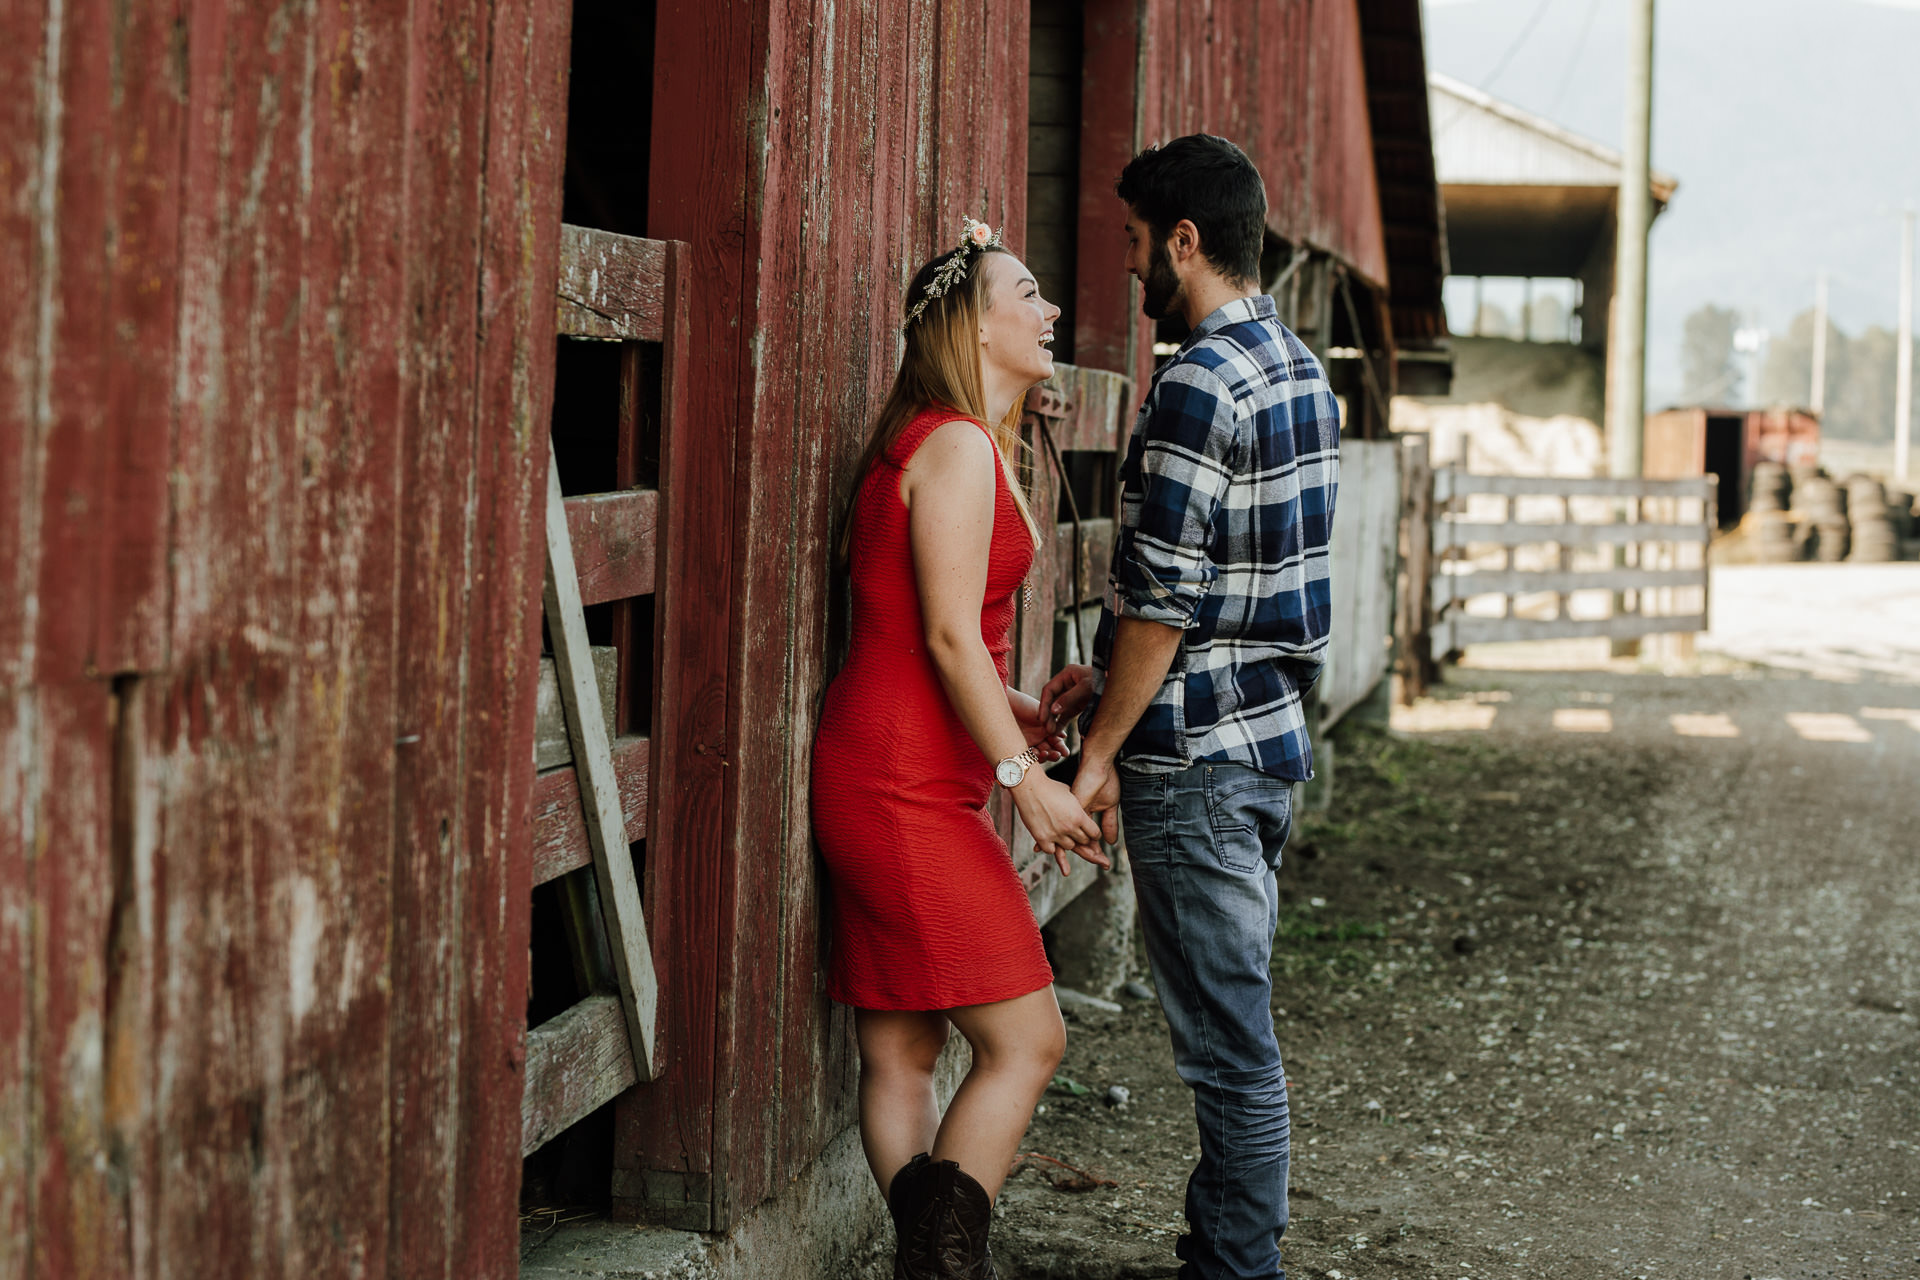 Nadine-Hansen-Photography-Hopcott-Farms-Engagement-3.jpg